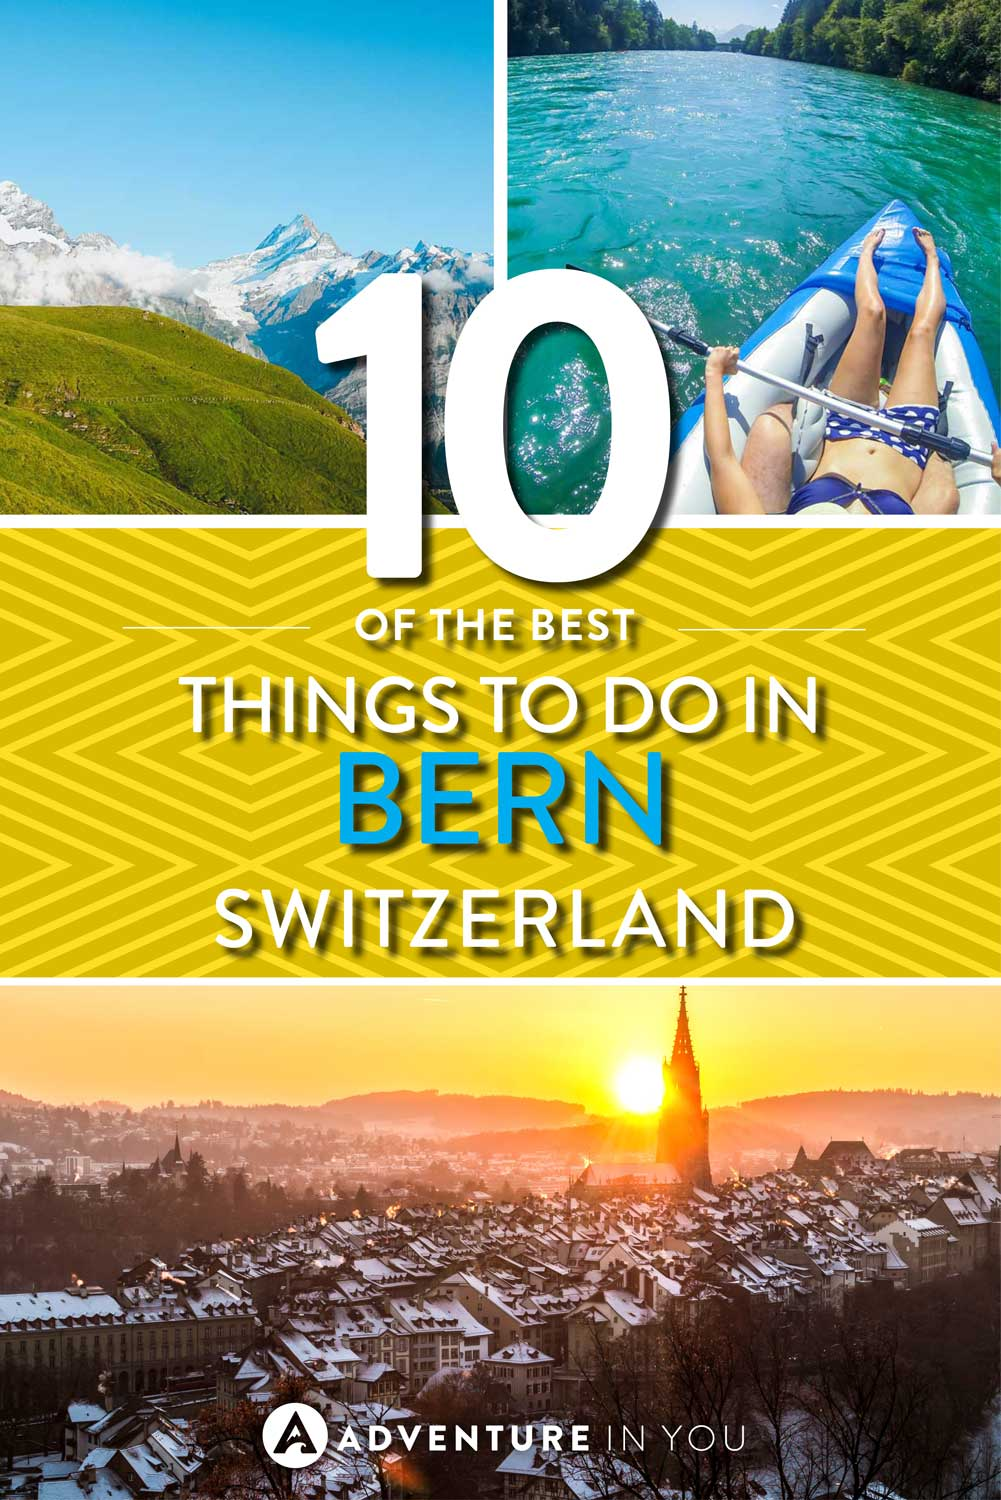 Bern Switzerland | Looking for things to do in Bern? Check out our full post on the best things to do in this beautiful city. From climbing mountains to going on day trips, Bern is full of many awesome sights.